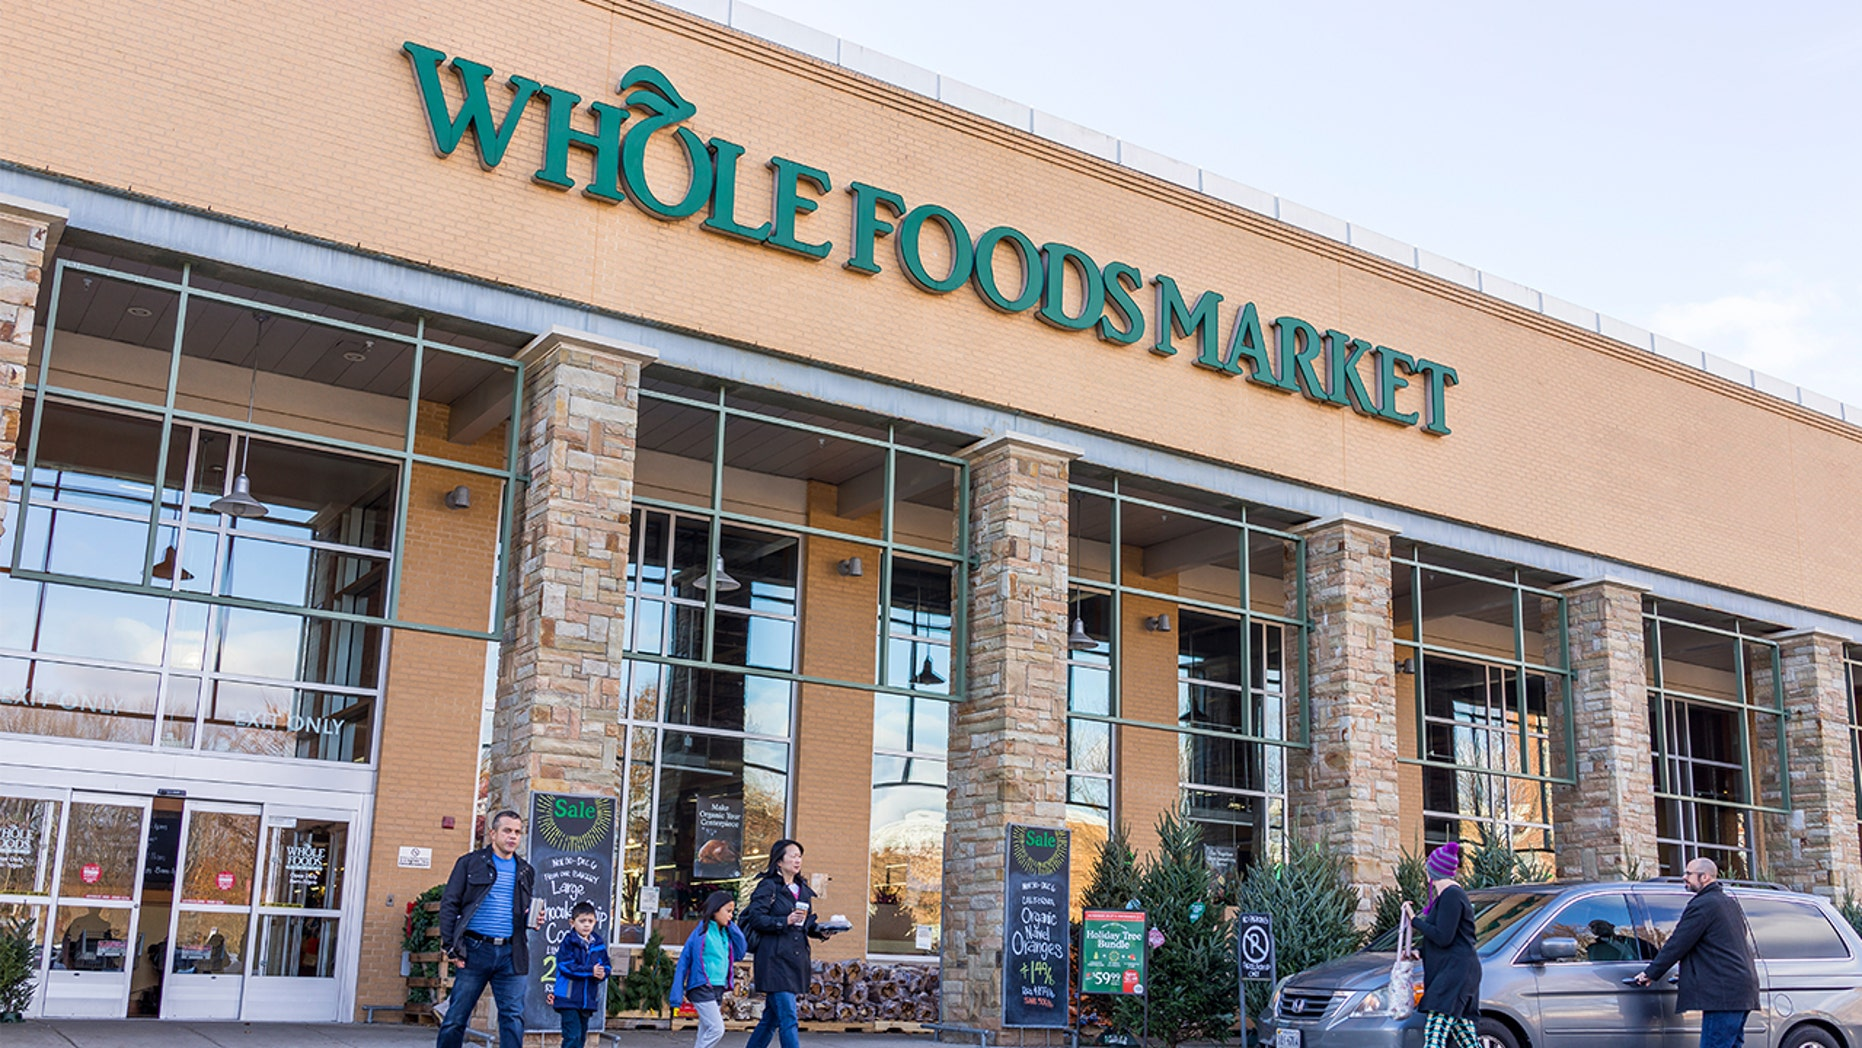 Whole Foods has seen widespread food shortages, leaving customers angry and employees frustrated.